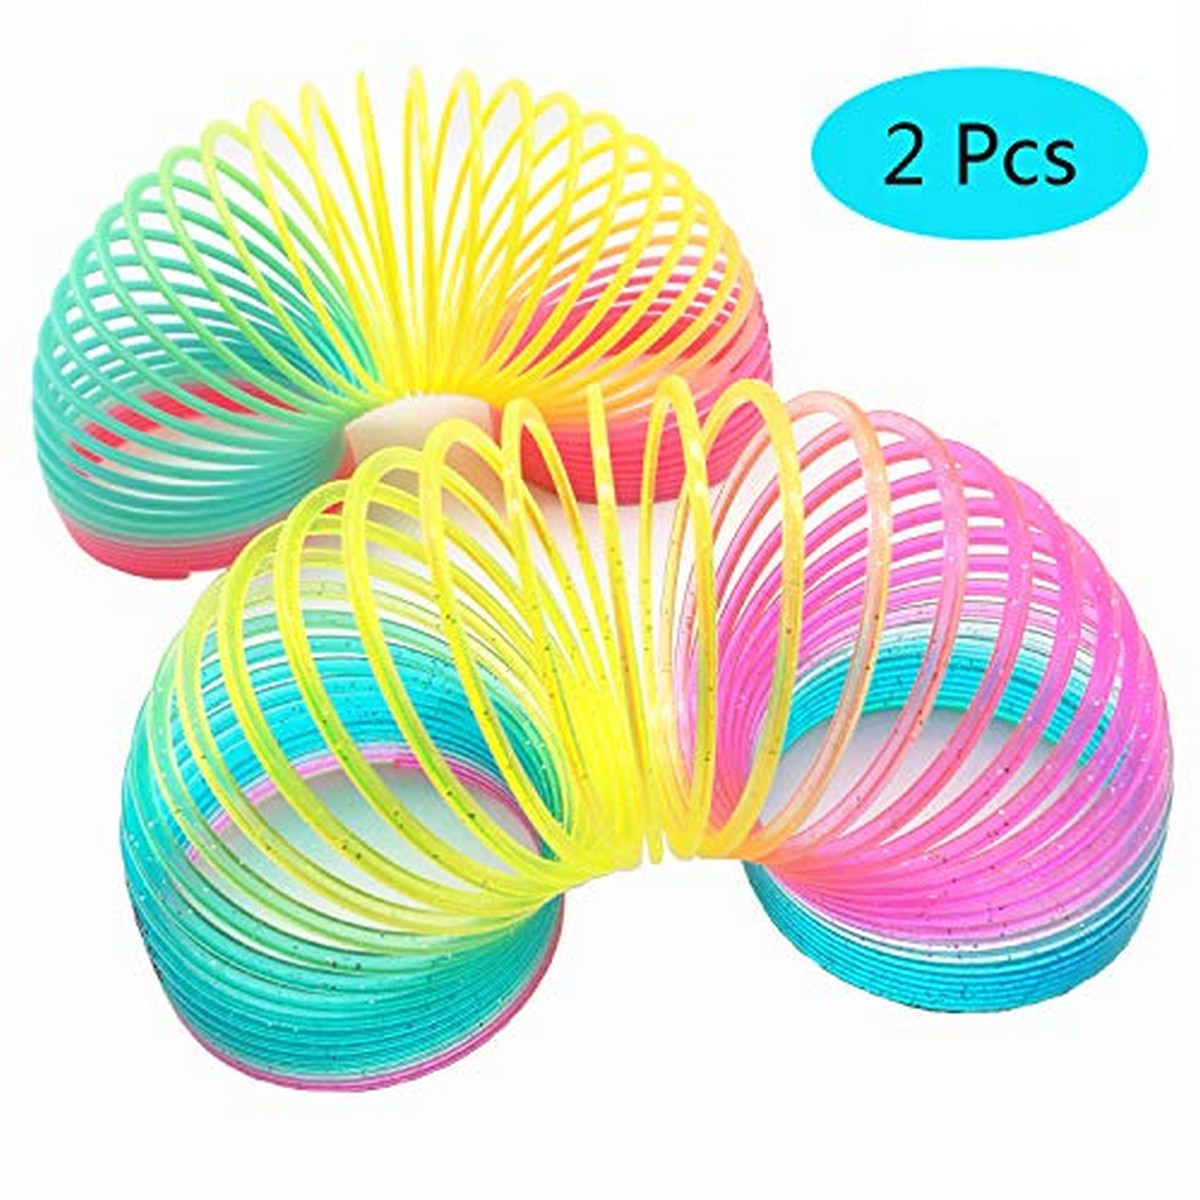 PACK OF 2 - Magic Slinky Rainbow Springs Bounce Fun Toy For Kids